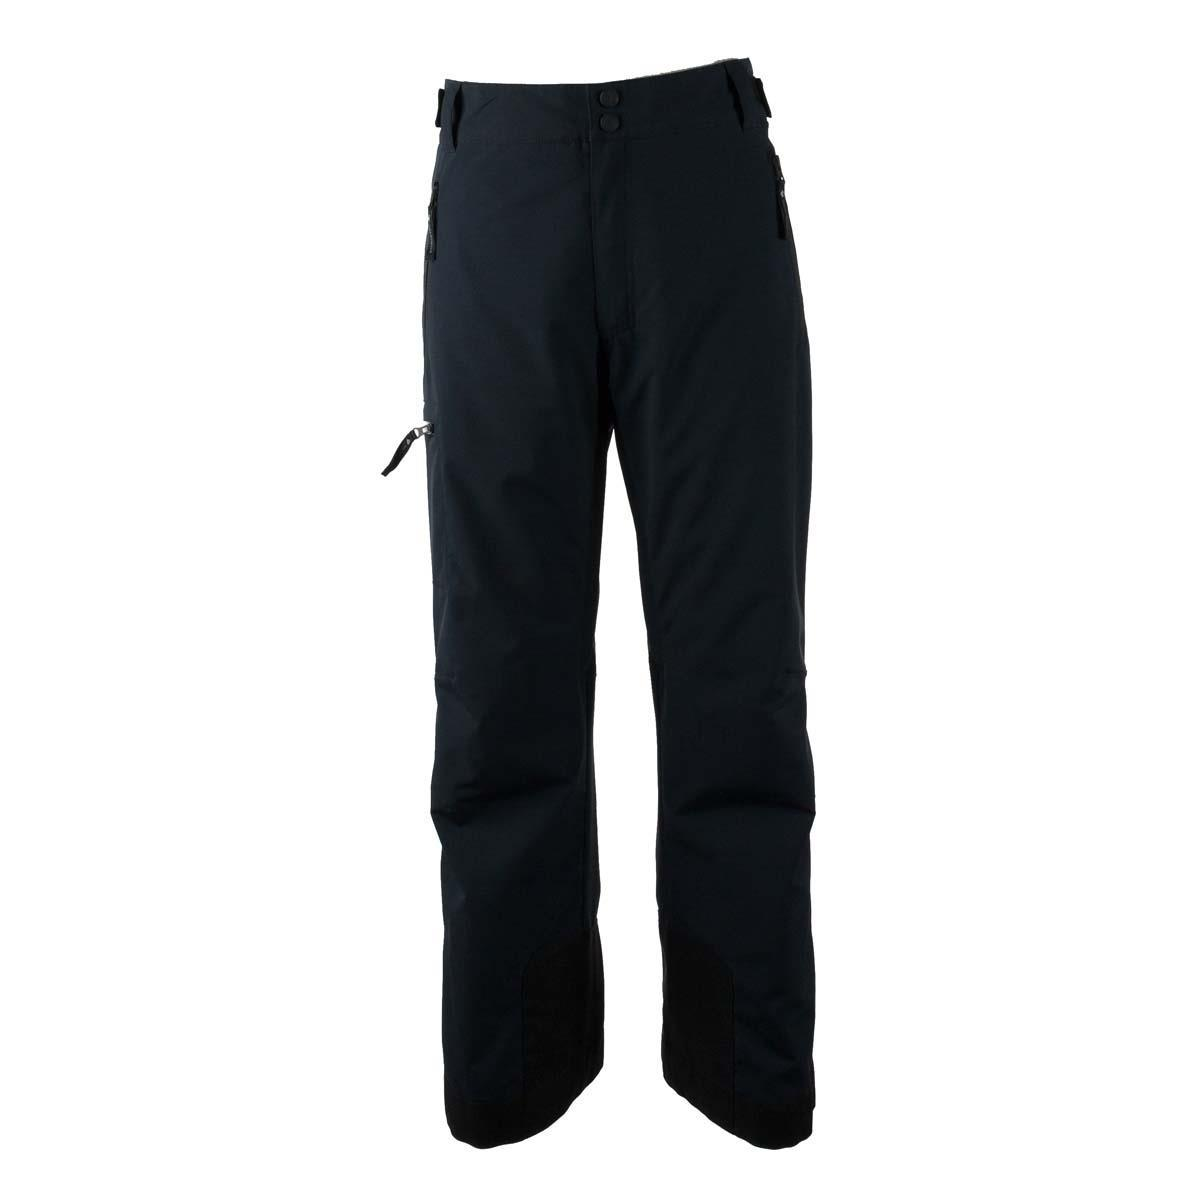 be55d033f7 Obermeyer Alpinist Stretch Pant Mens. Loading zoom